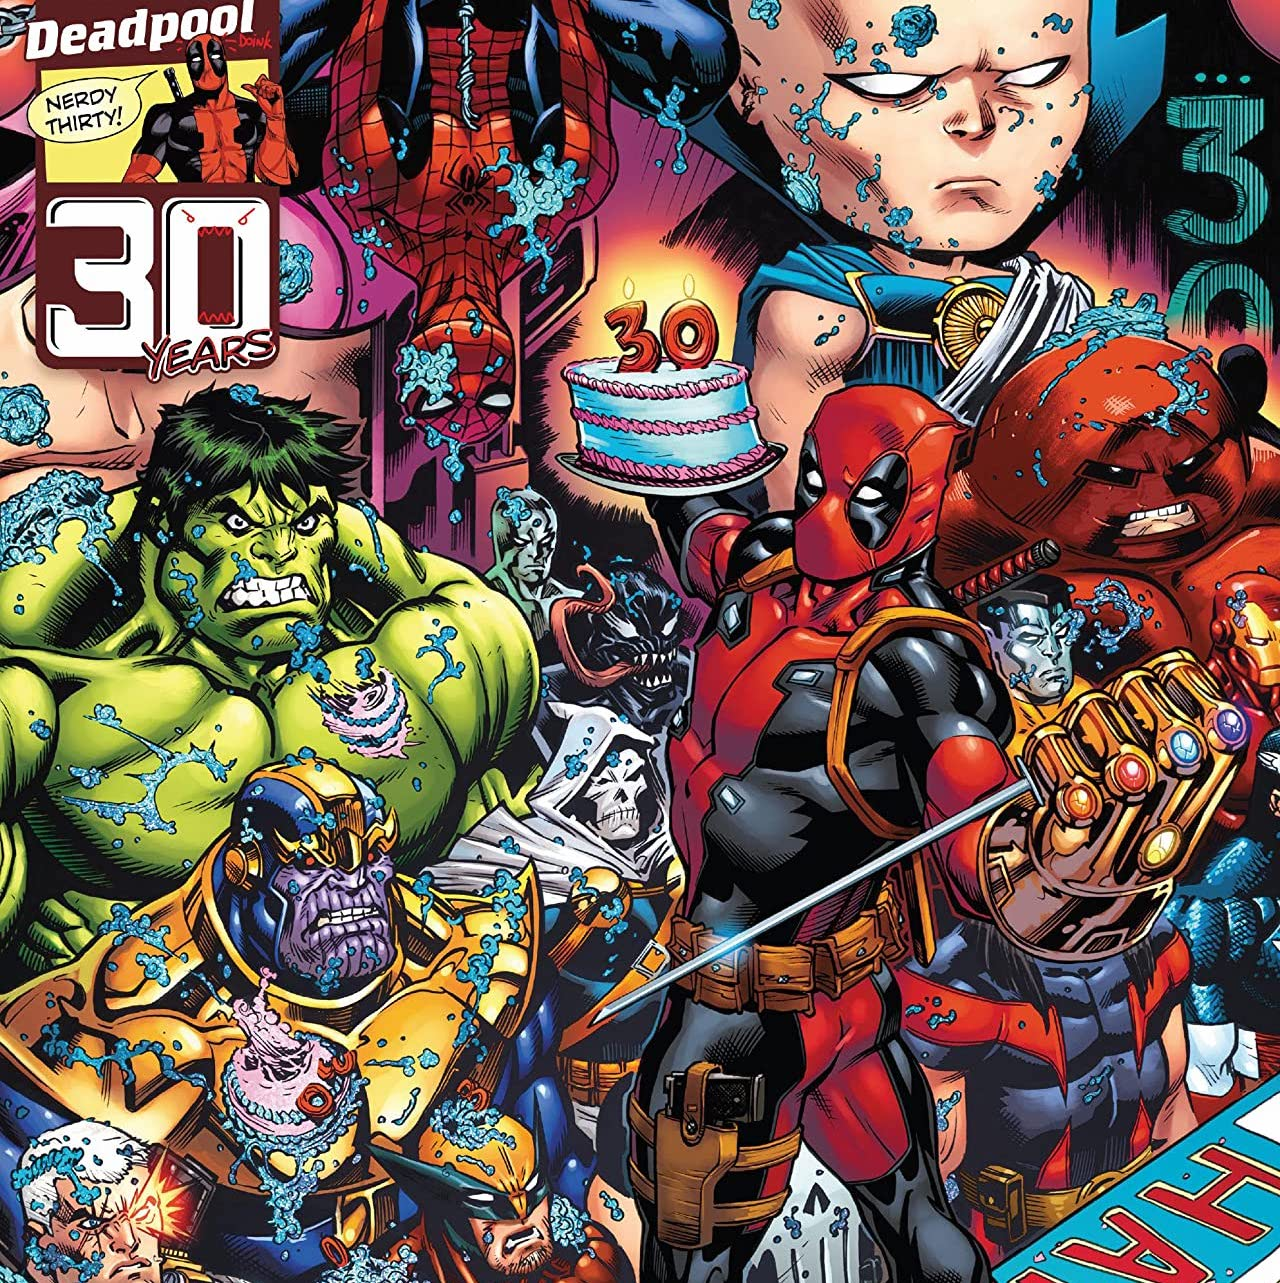 'Deadpool Nerdy 30' celebrates three decades of the Merc With a Mouth